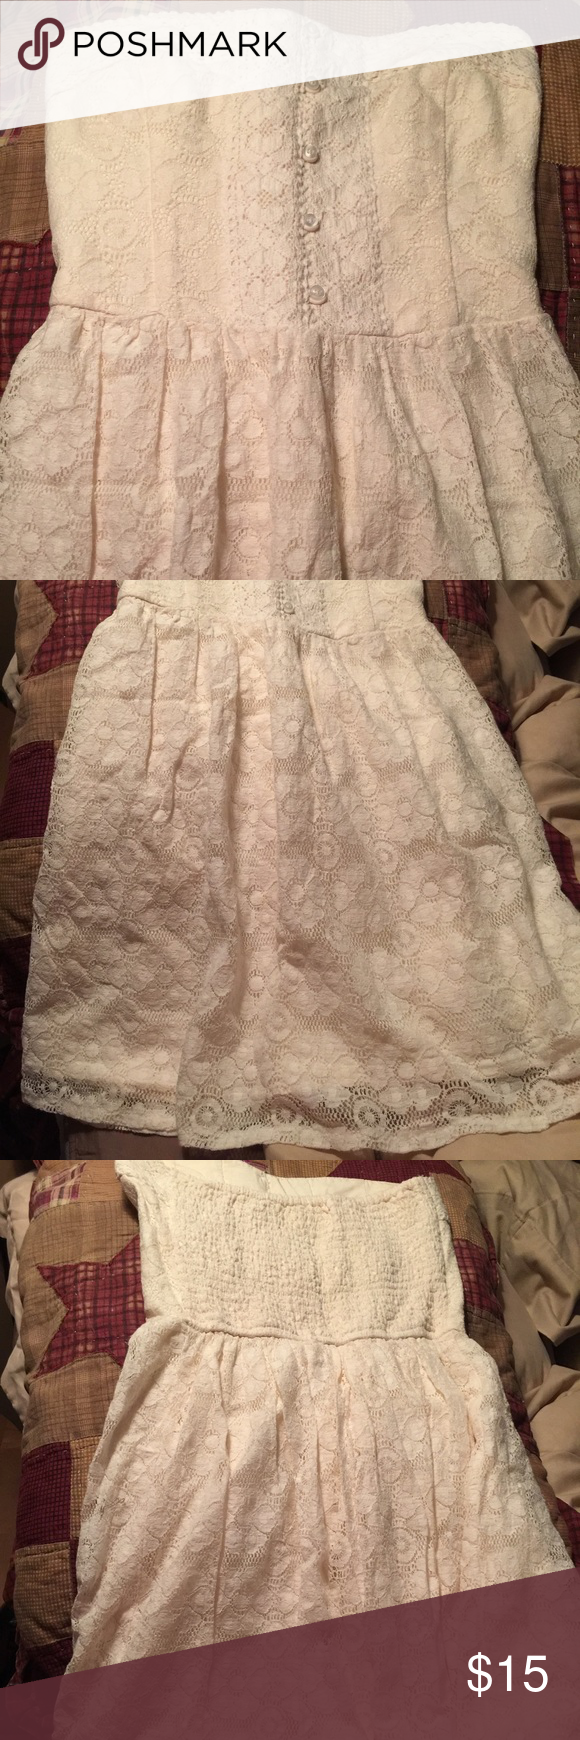 A&F strapless dress Beautiful creme color , perfect condition Abercrombie & Fitch Dresses Strapless